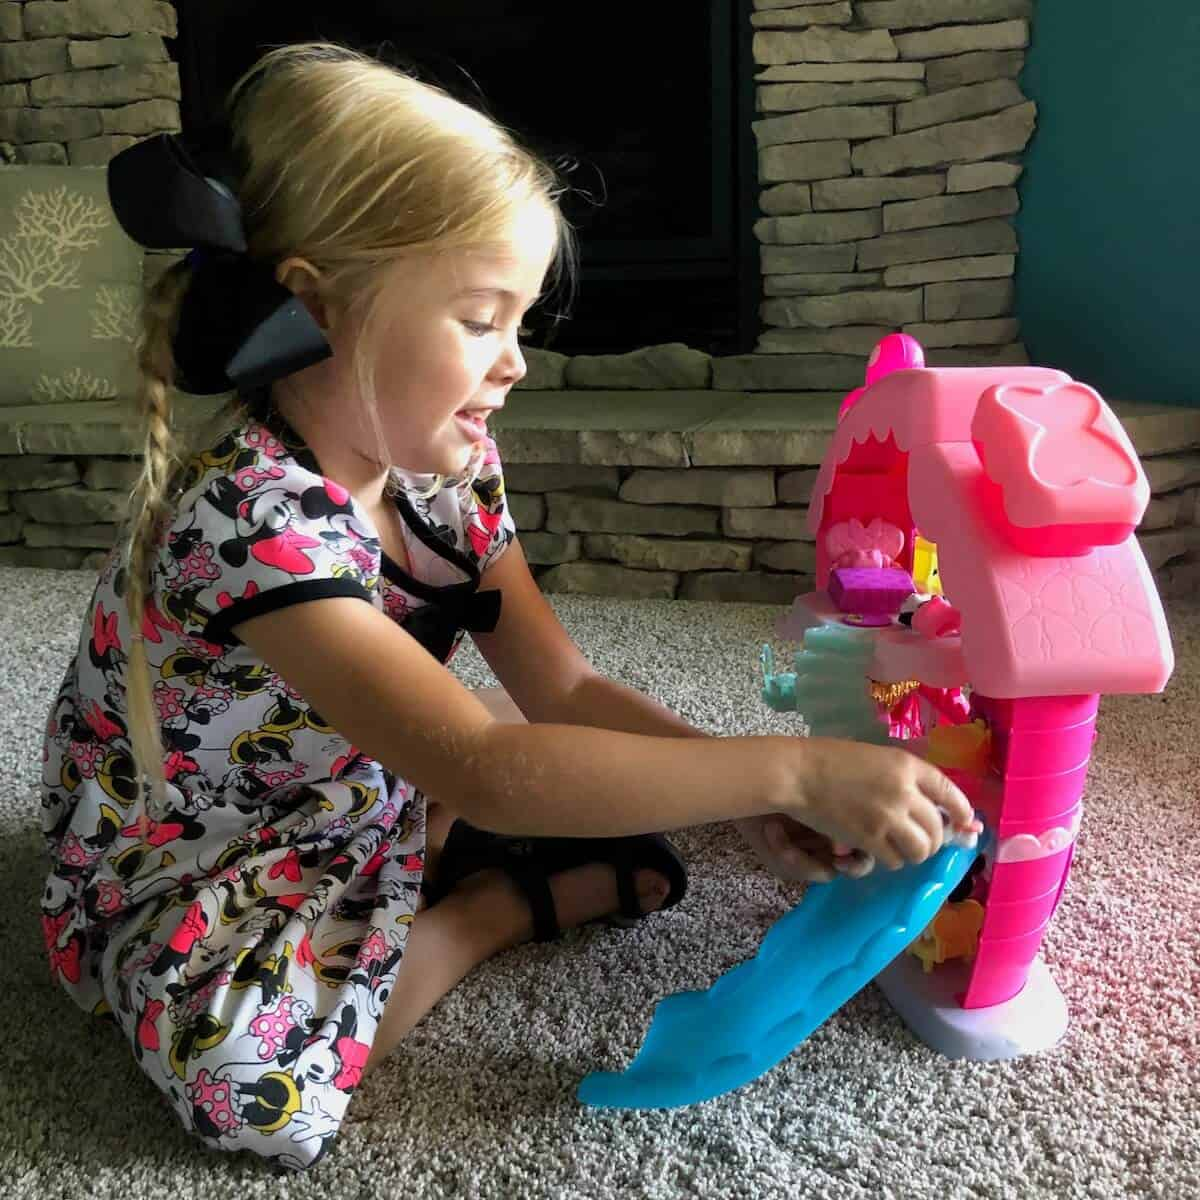 The Best Dollhouse for a 2-Year-Old